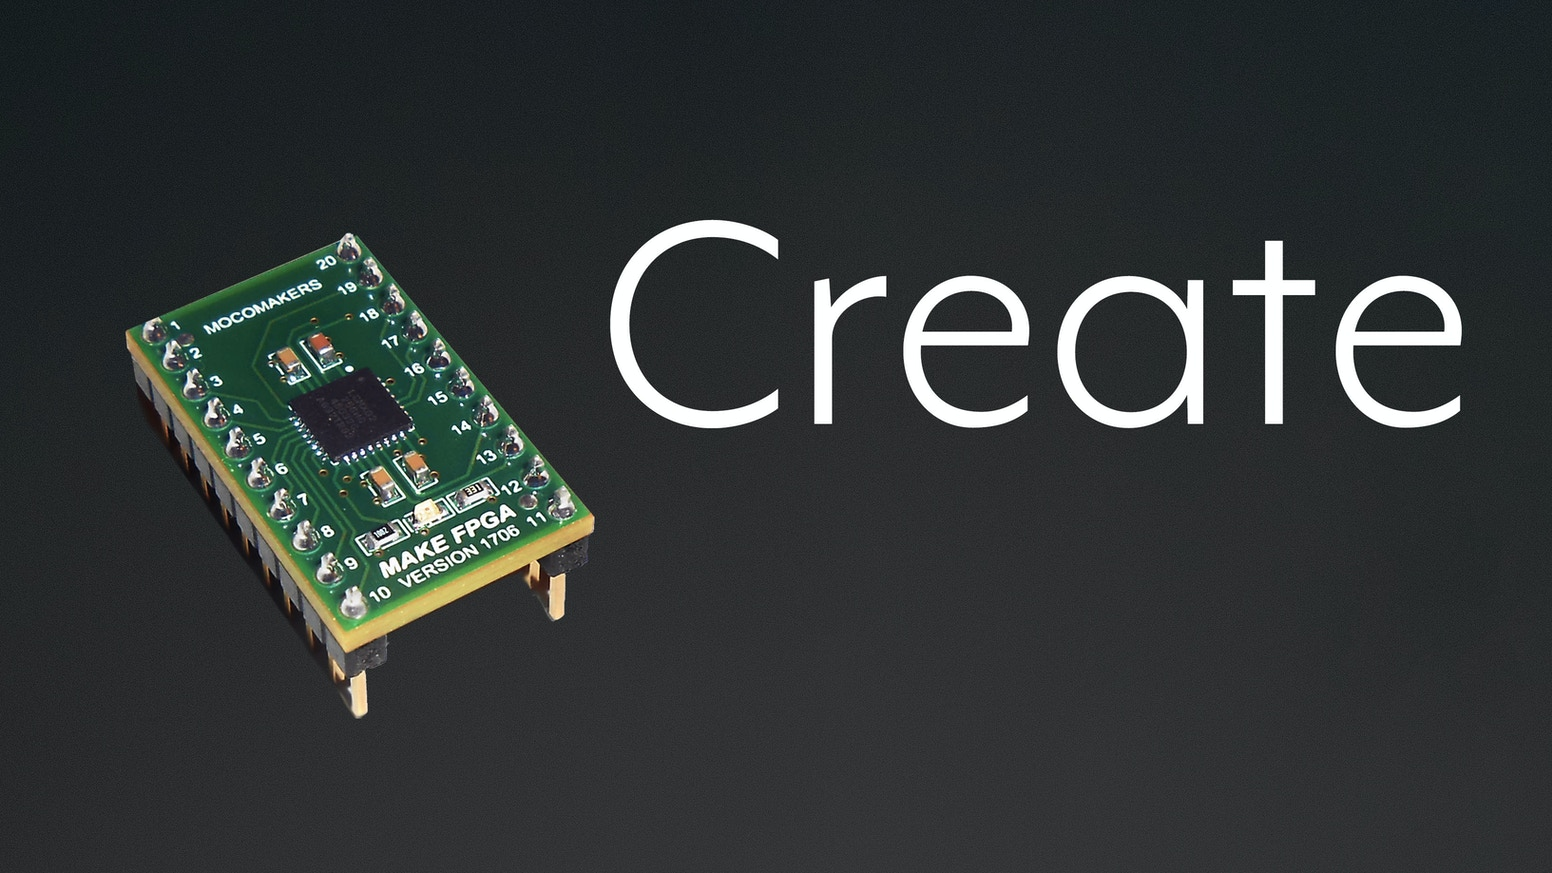 A breakout board for learning and applying FPGAs. A seriously powerful electronics tool for your projects.